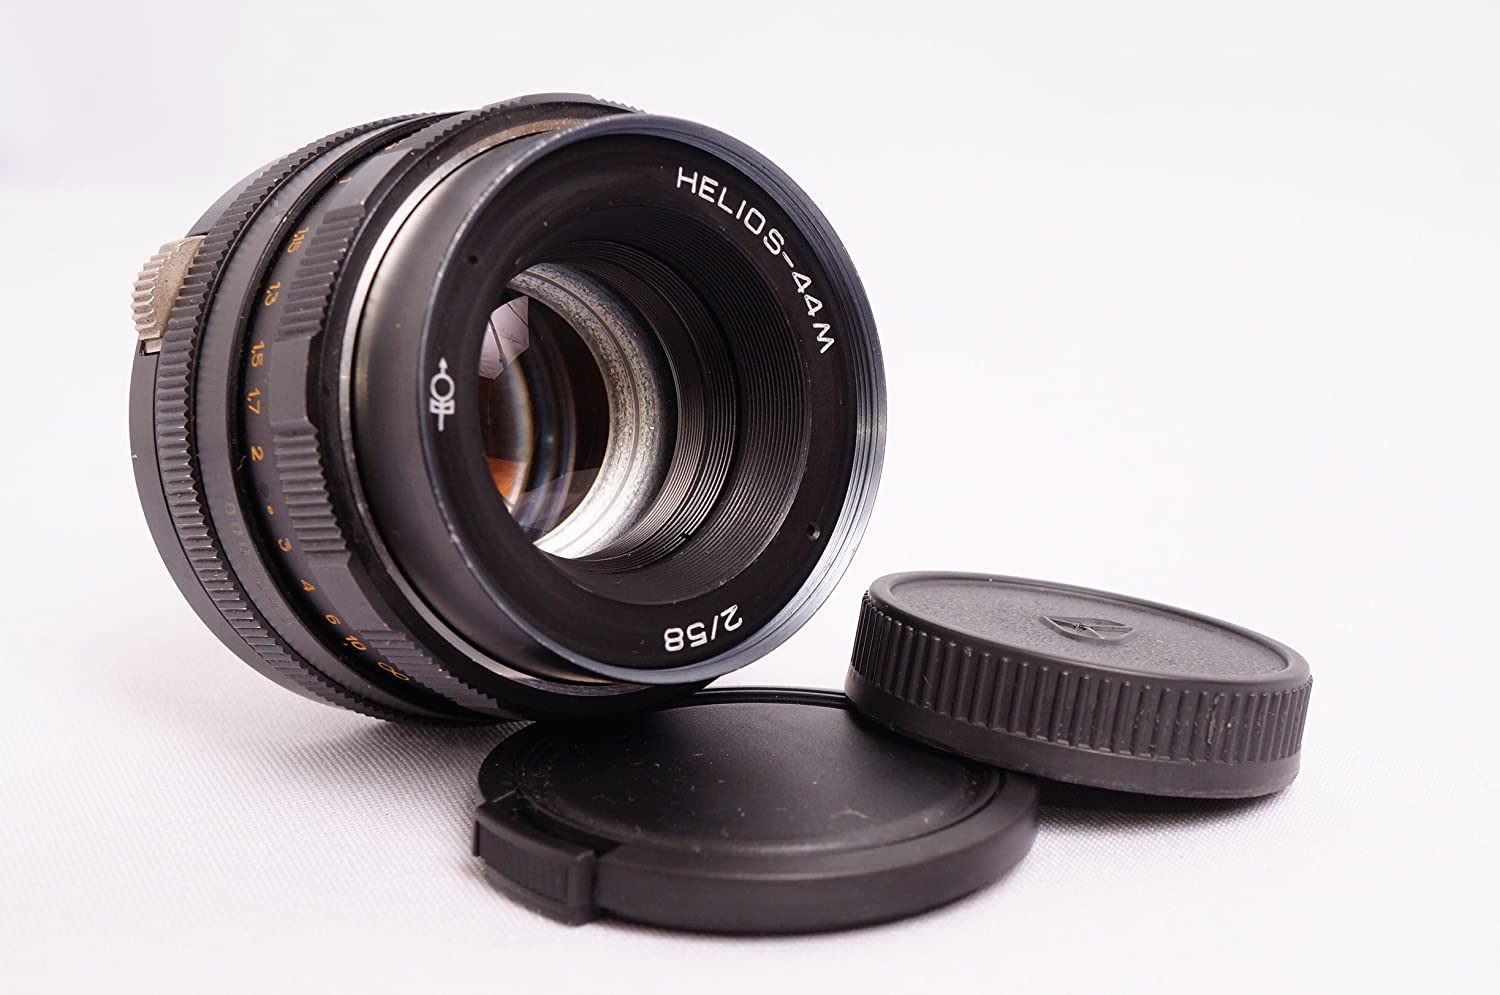 Helios 44M 58mm F2 Russian Lens for Sony E NEX (for E-mount cameras)